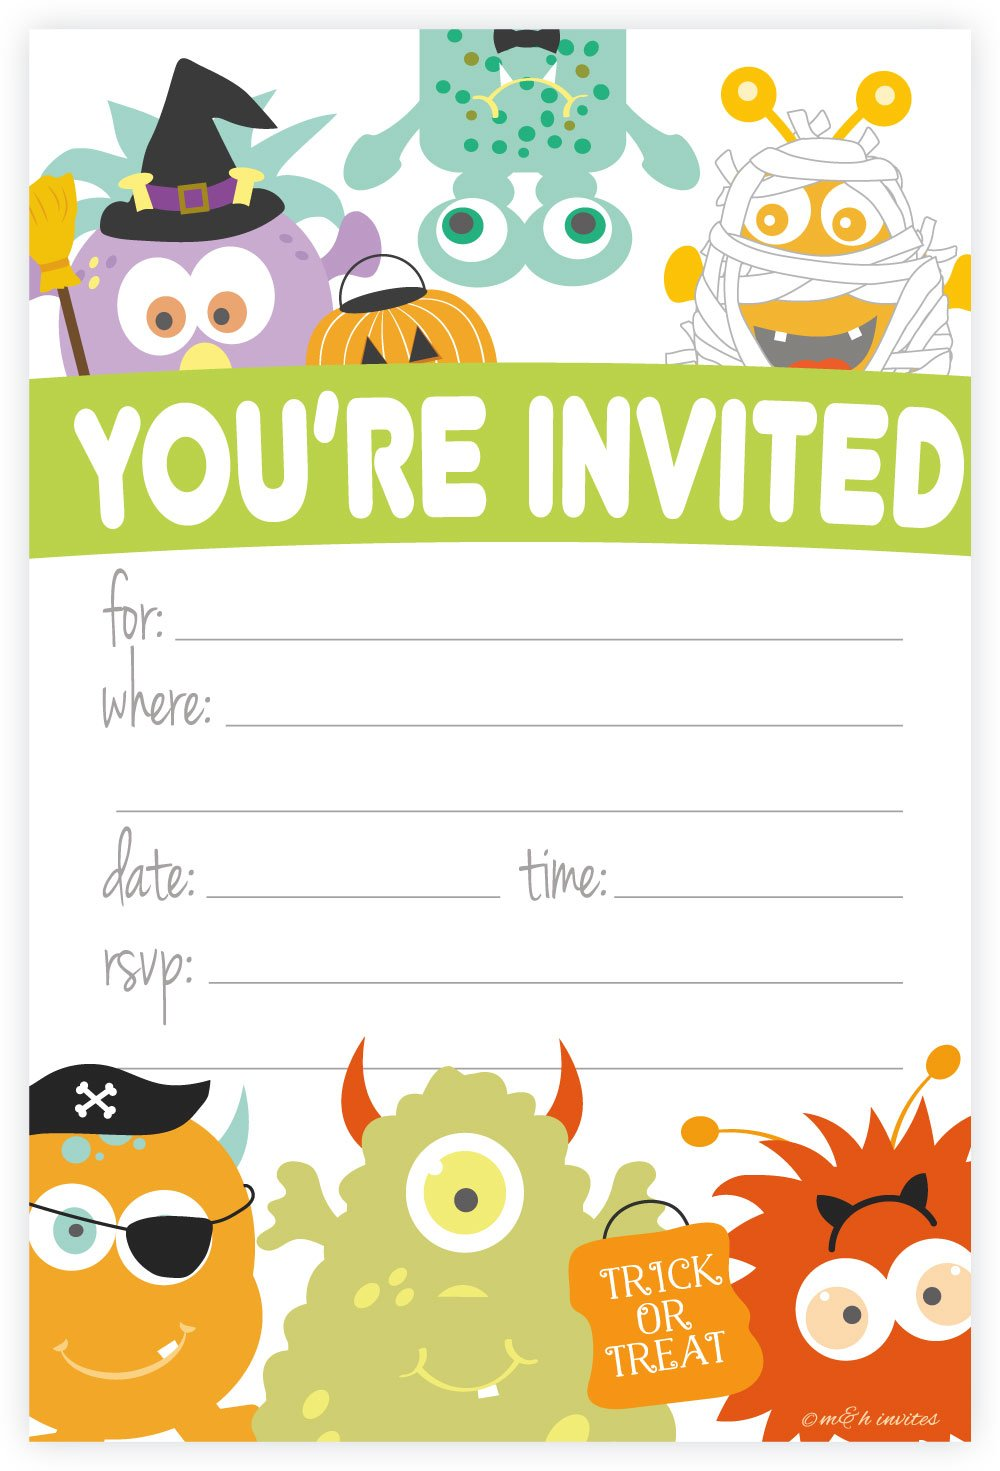 Monster Costume Halloween Themed Party Invitations - Fill In Style (20 Count) With Envelopes by m&h invites